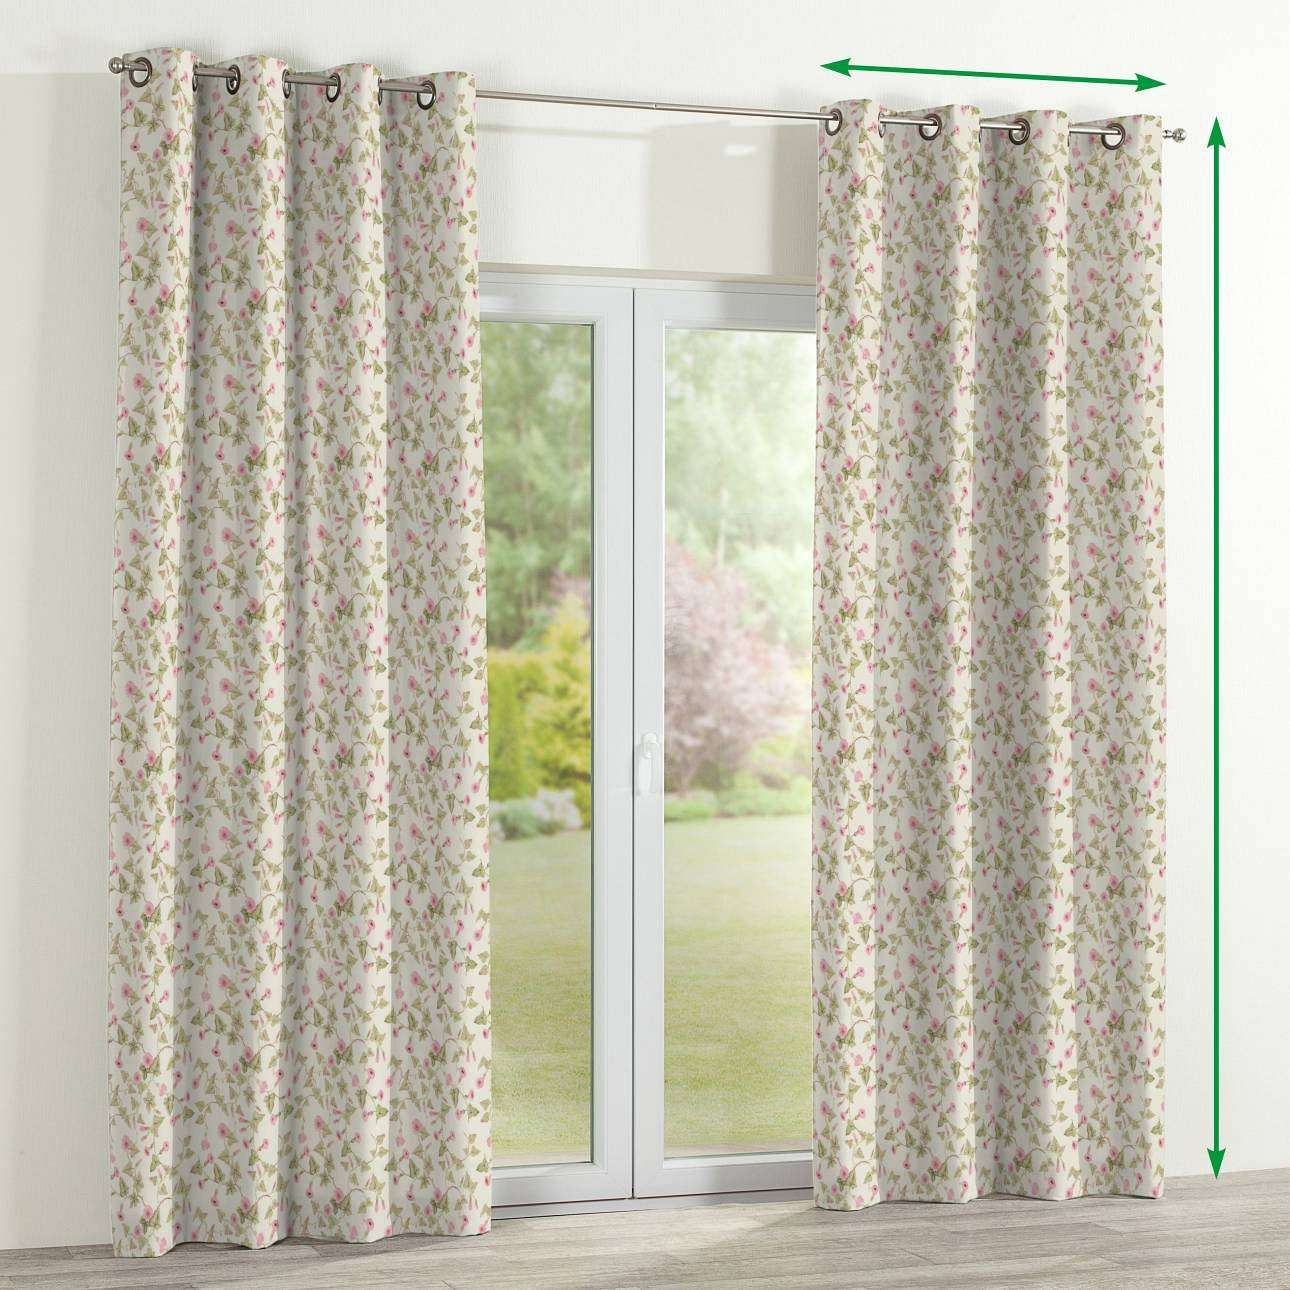 Eyelet curtains in collection Mirella, fabric: 140-41